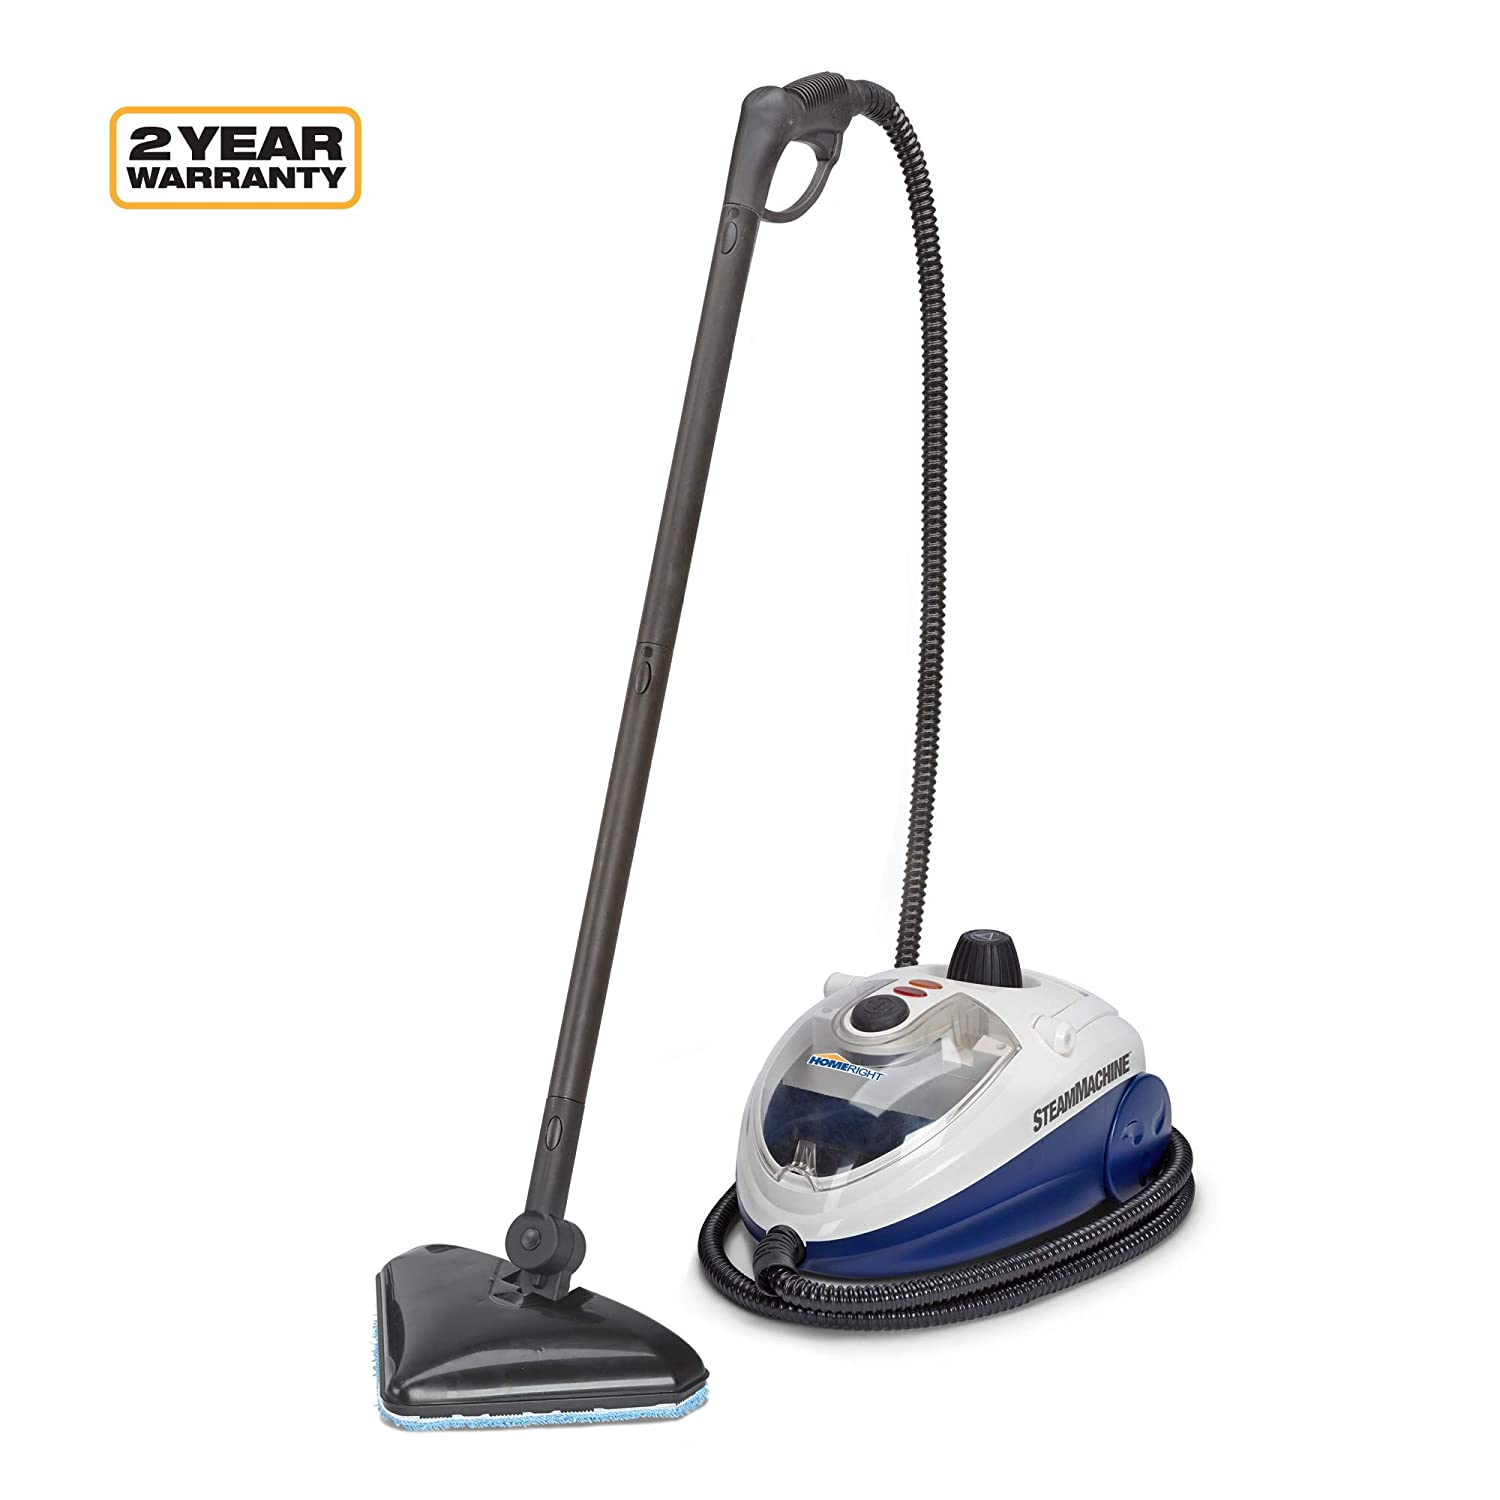 Homeright C900134.M SteamMachine Elite Multi-Purpose Mop with 20 Accessories for Chemical-Free Steam Cleaning, Hardwood Floors, Tile